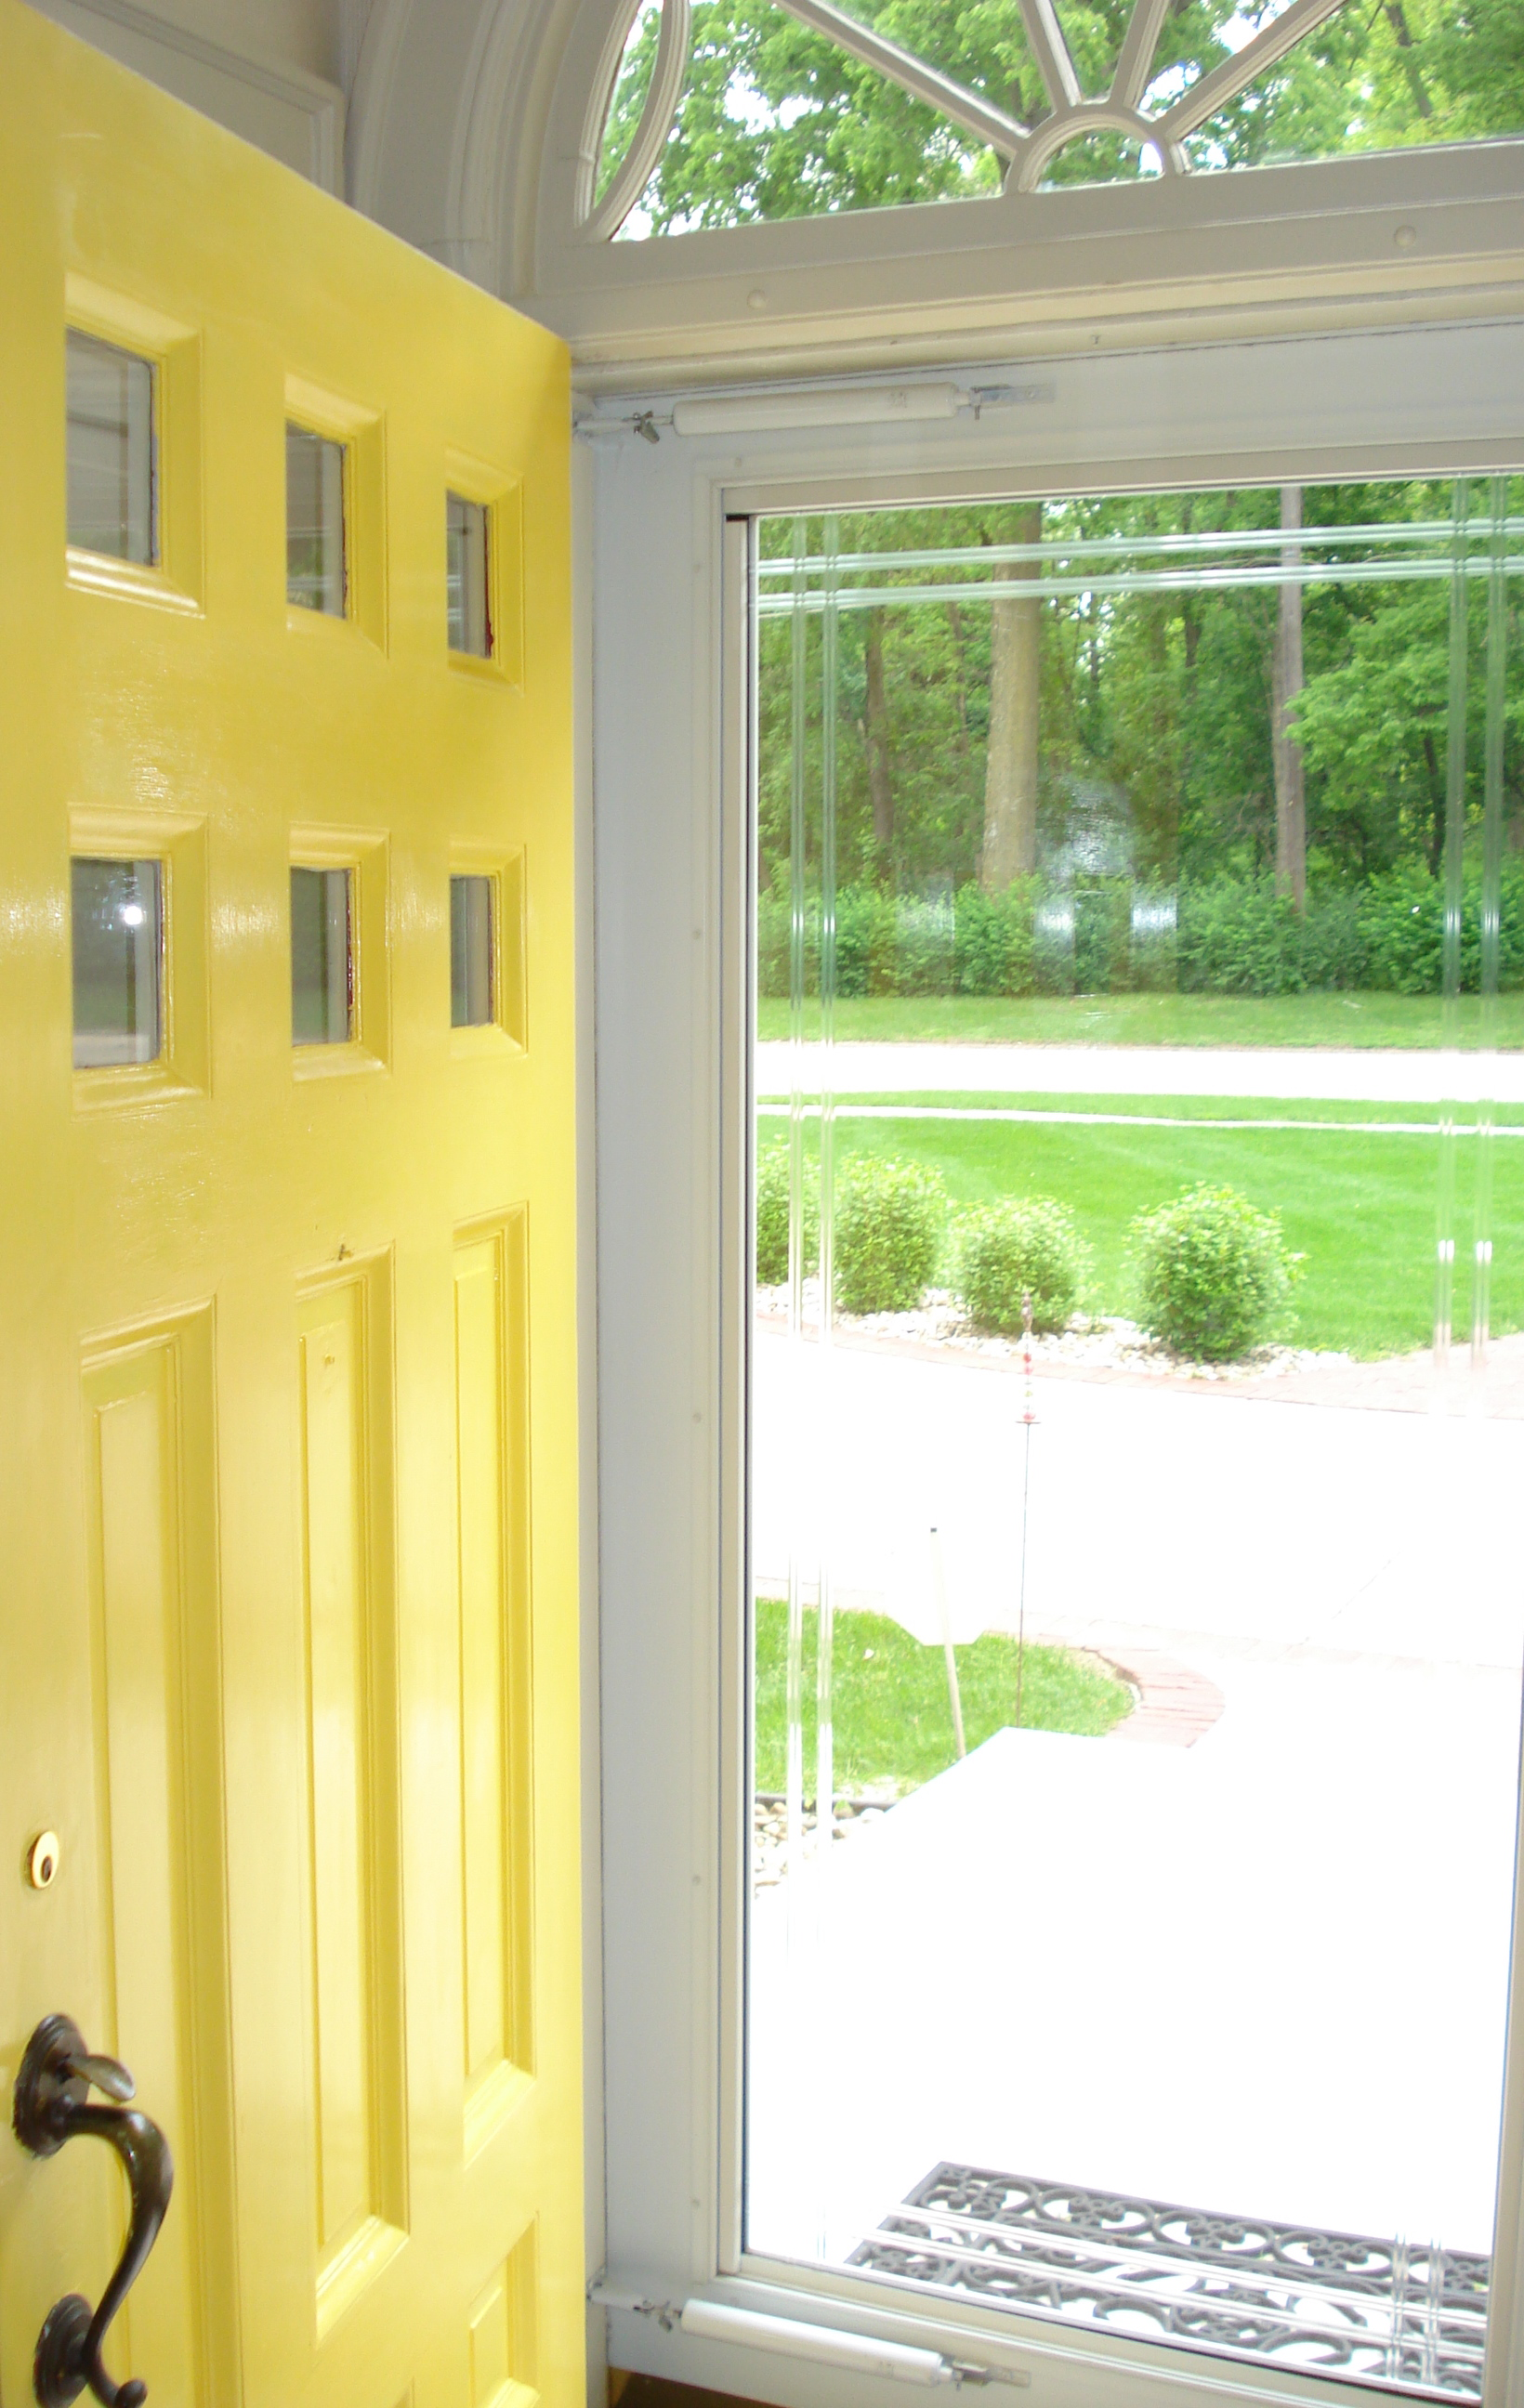 Yellow Front Doors Are Not For The Faint of Heart or Neighborhood ...